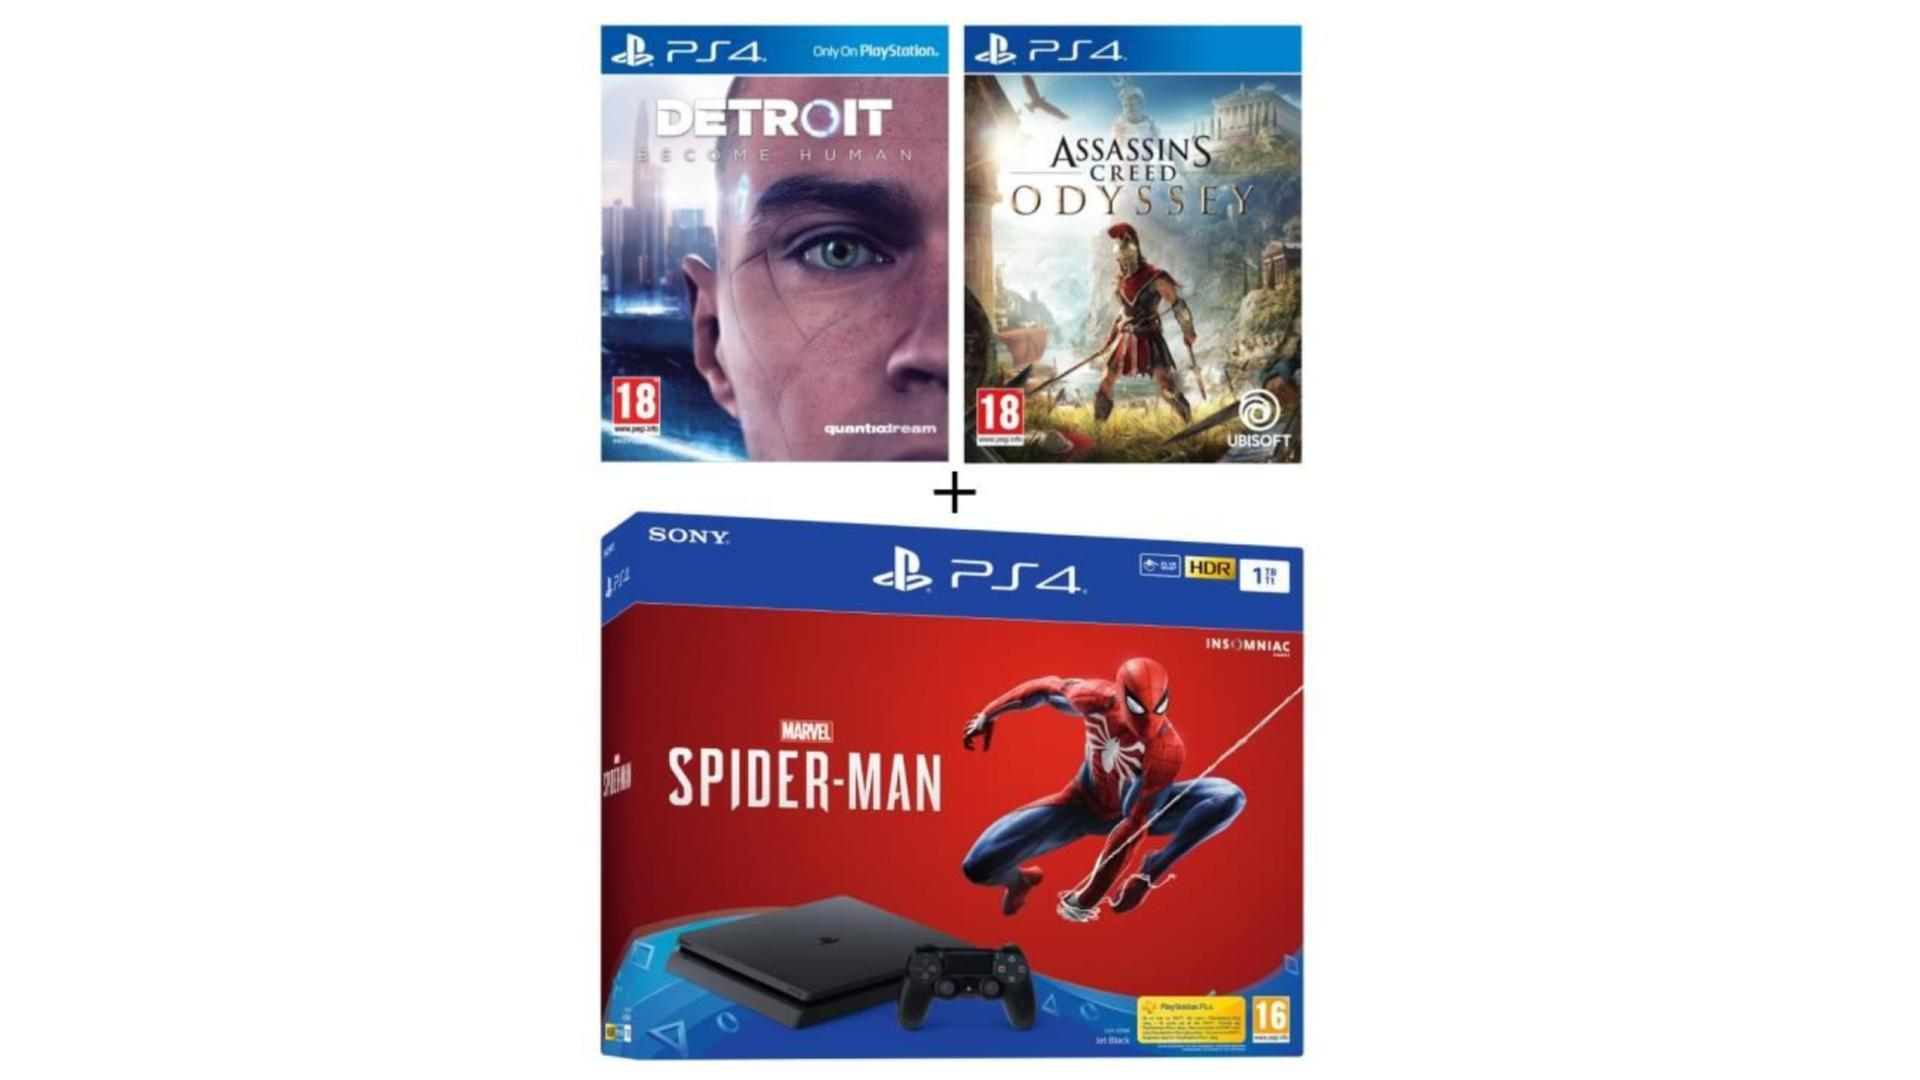 🔥 Cyber Monday : pack PS4 (1 To) + 3 jeux (Assassin's Creed, Detroit et Spider-Man) à 309,99 euros